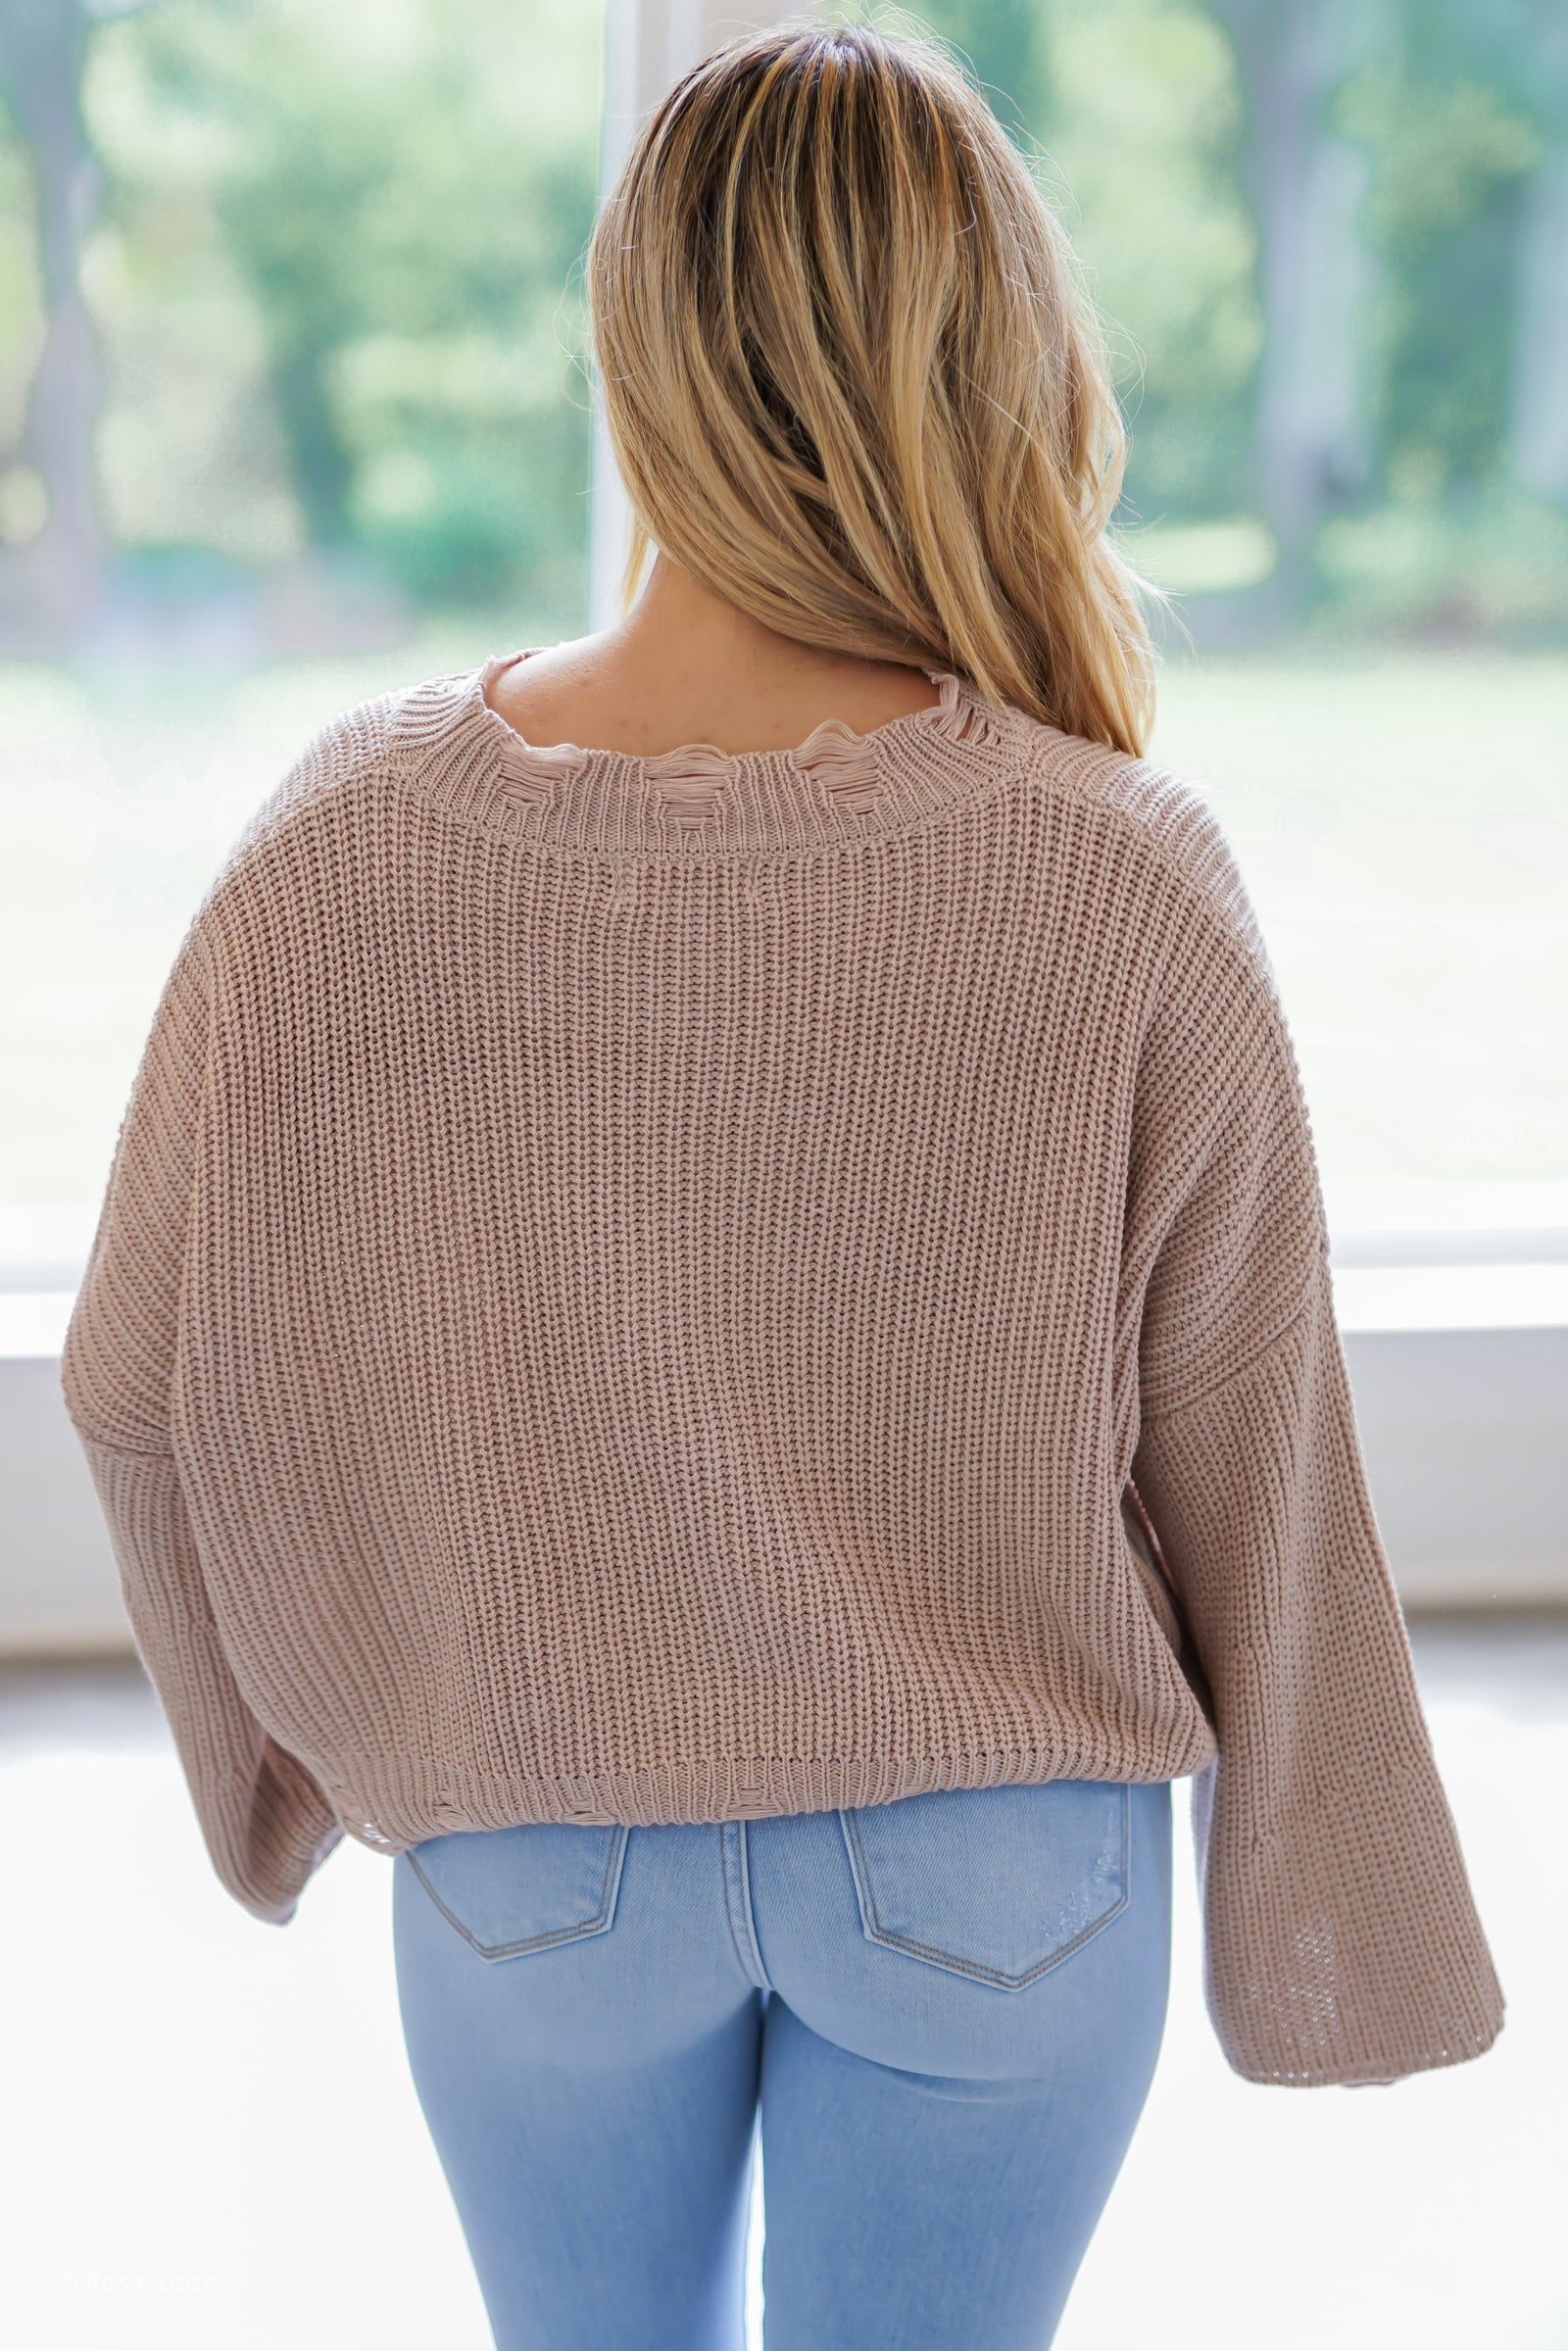 Southern Comfort Sweater